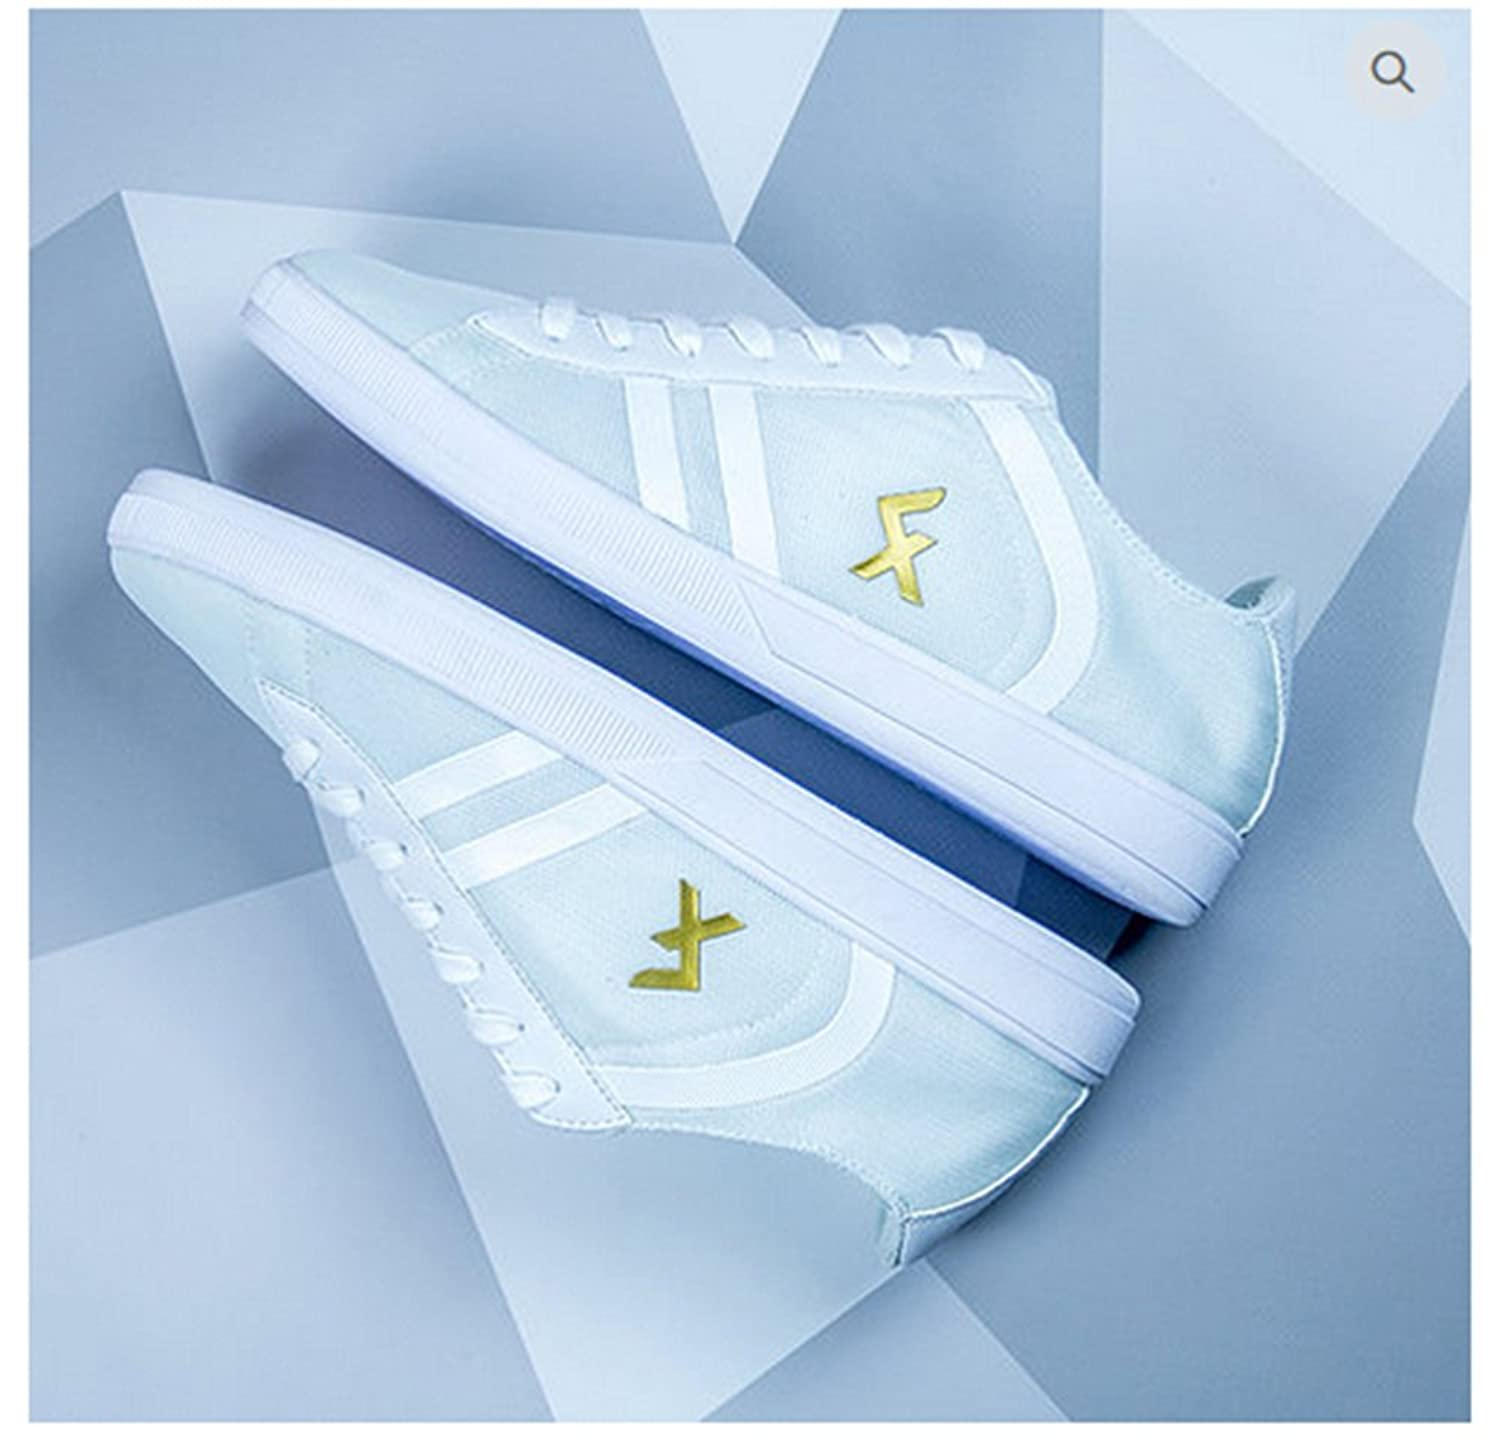 Chaussures Explore Freestyle - Street Football - Pointure 41 SL0RmjBk